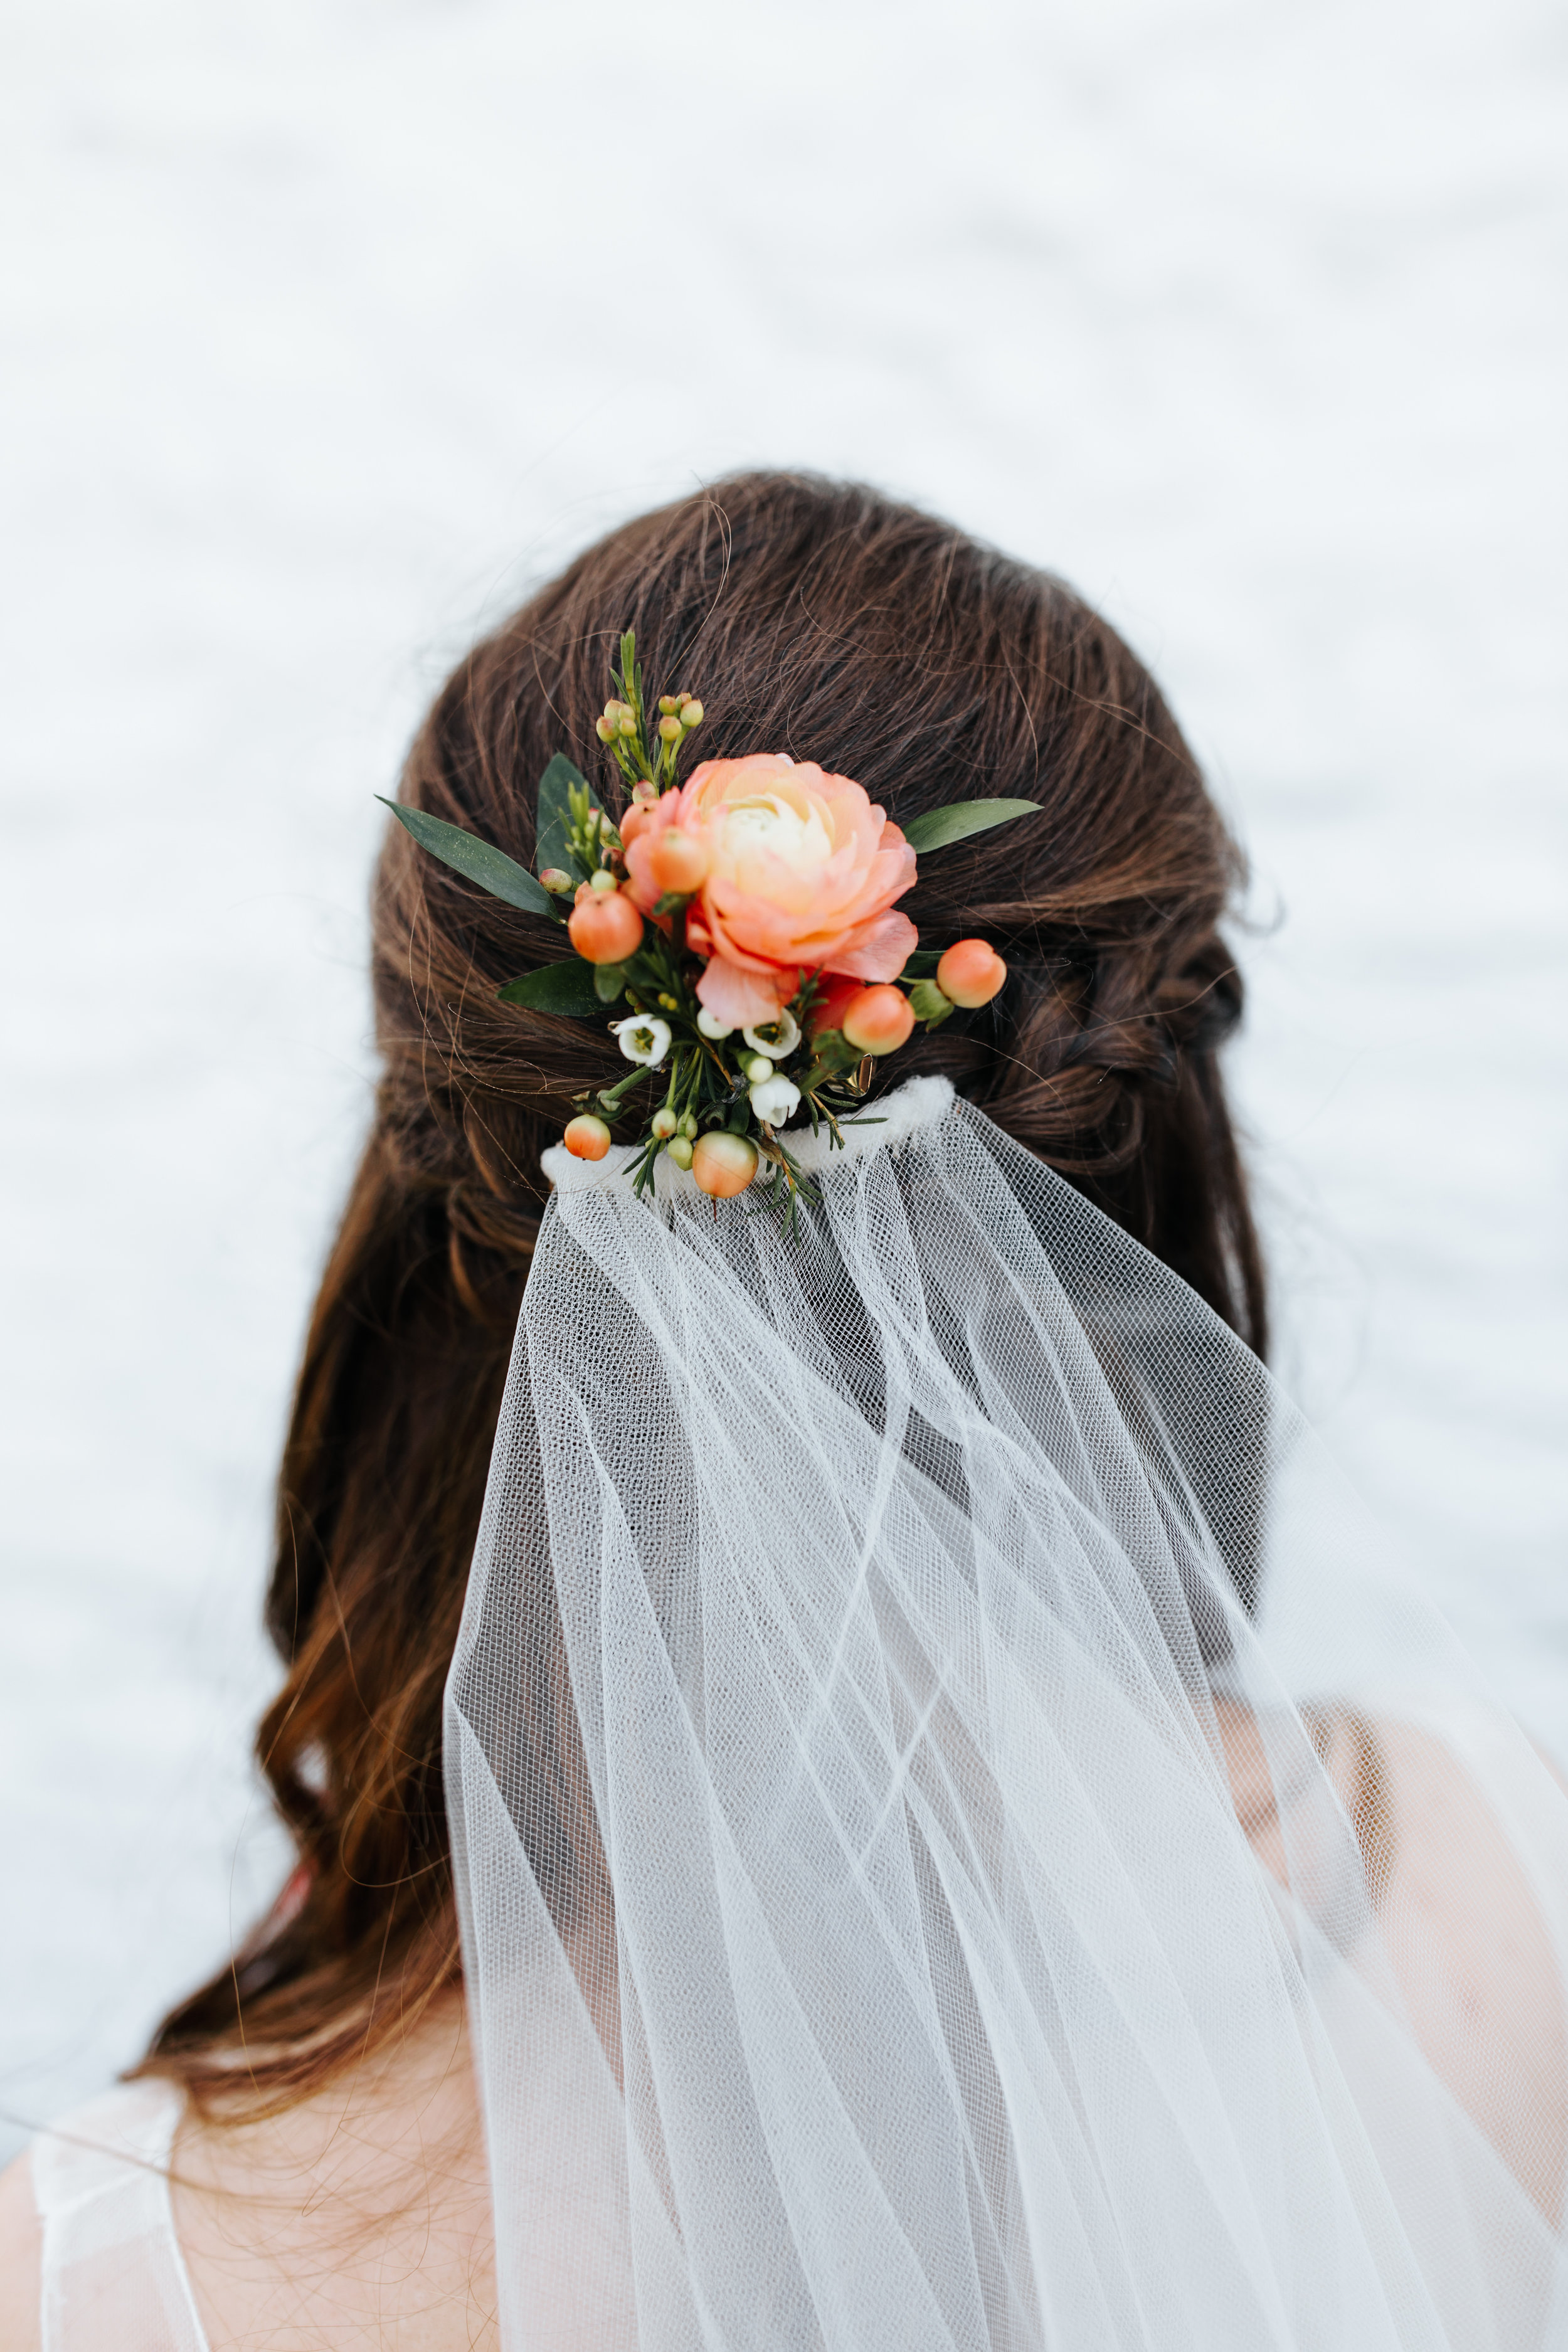 Ranunculus floral hairpiece for your wedding day.